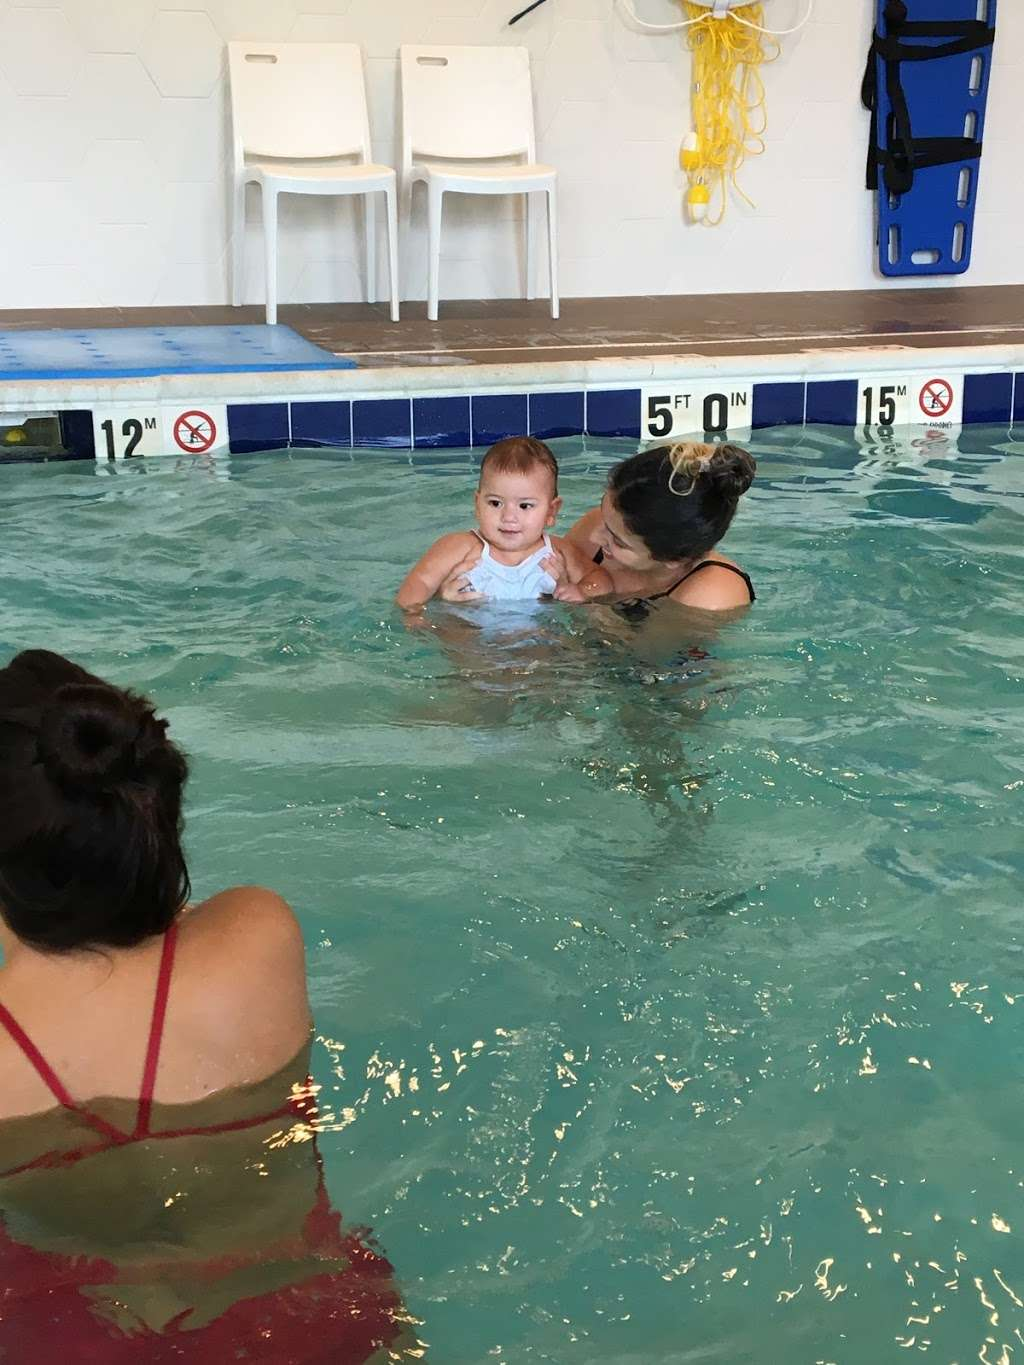 Take Me To The Water Swim School - health  | Photo 1 of 10 | Address: 37-10 114th St, Corona, NY 11368, USA | Phone: (212) 371-9500